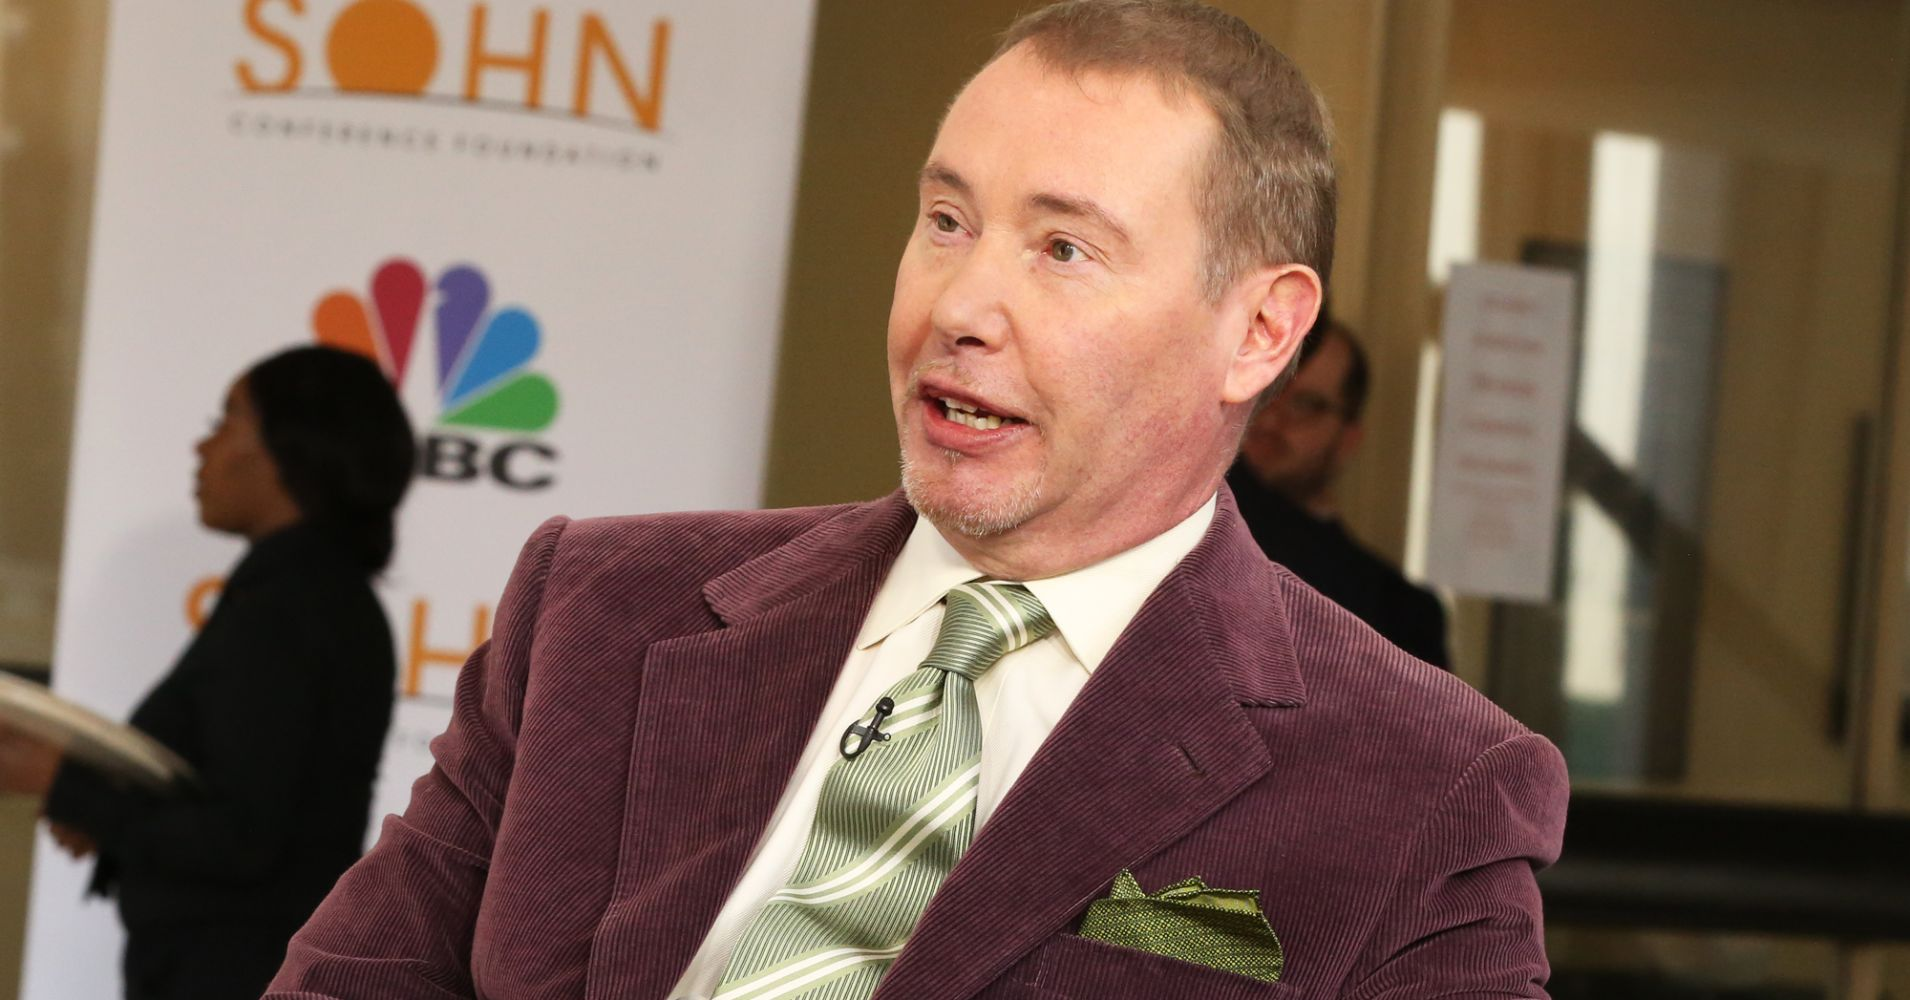 Gundlach's warning on 'ocean of debt' adds to worries over corporate bonds